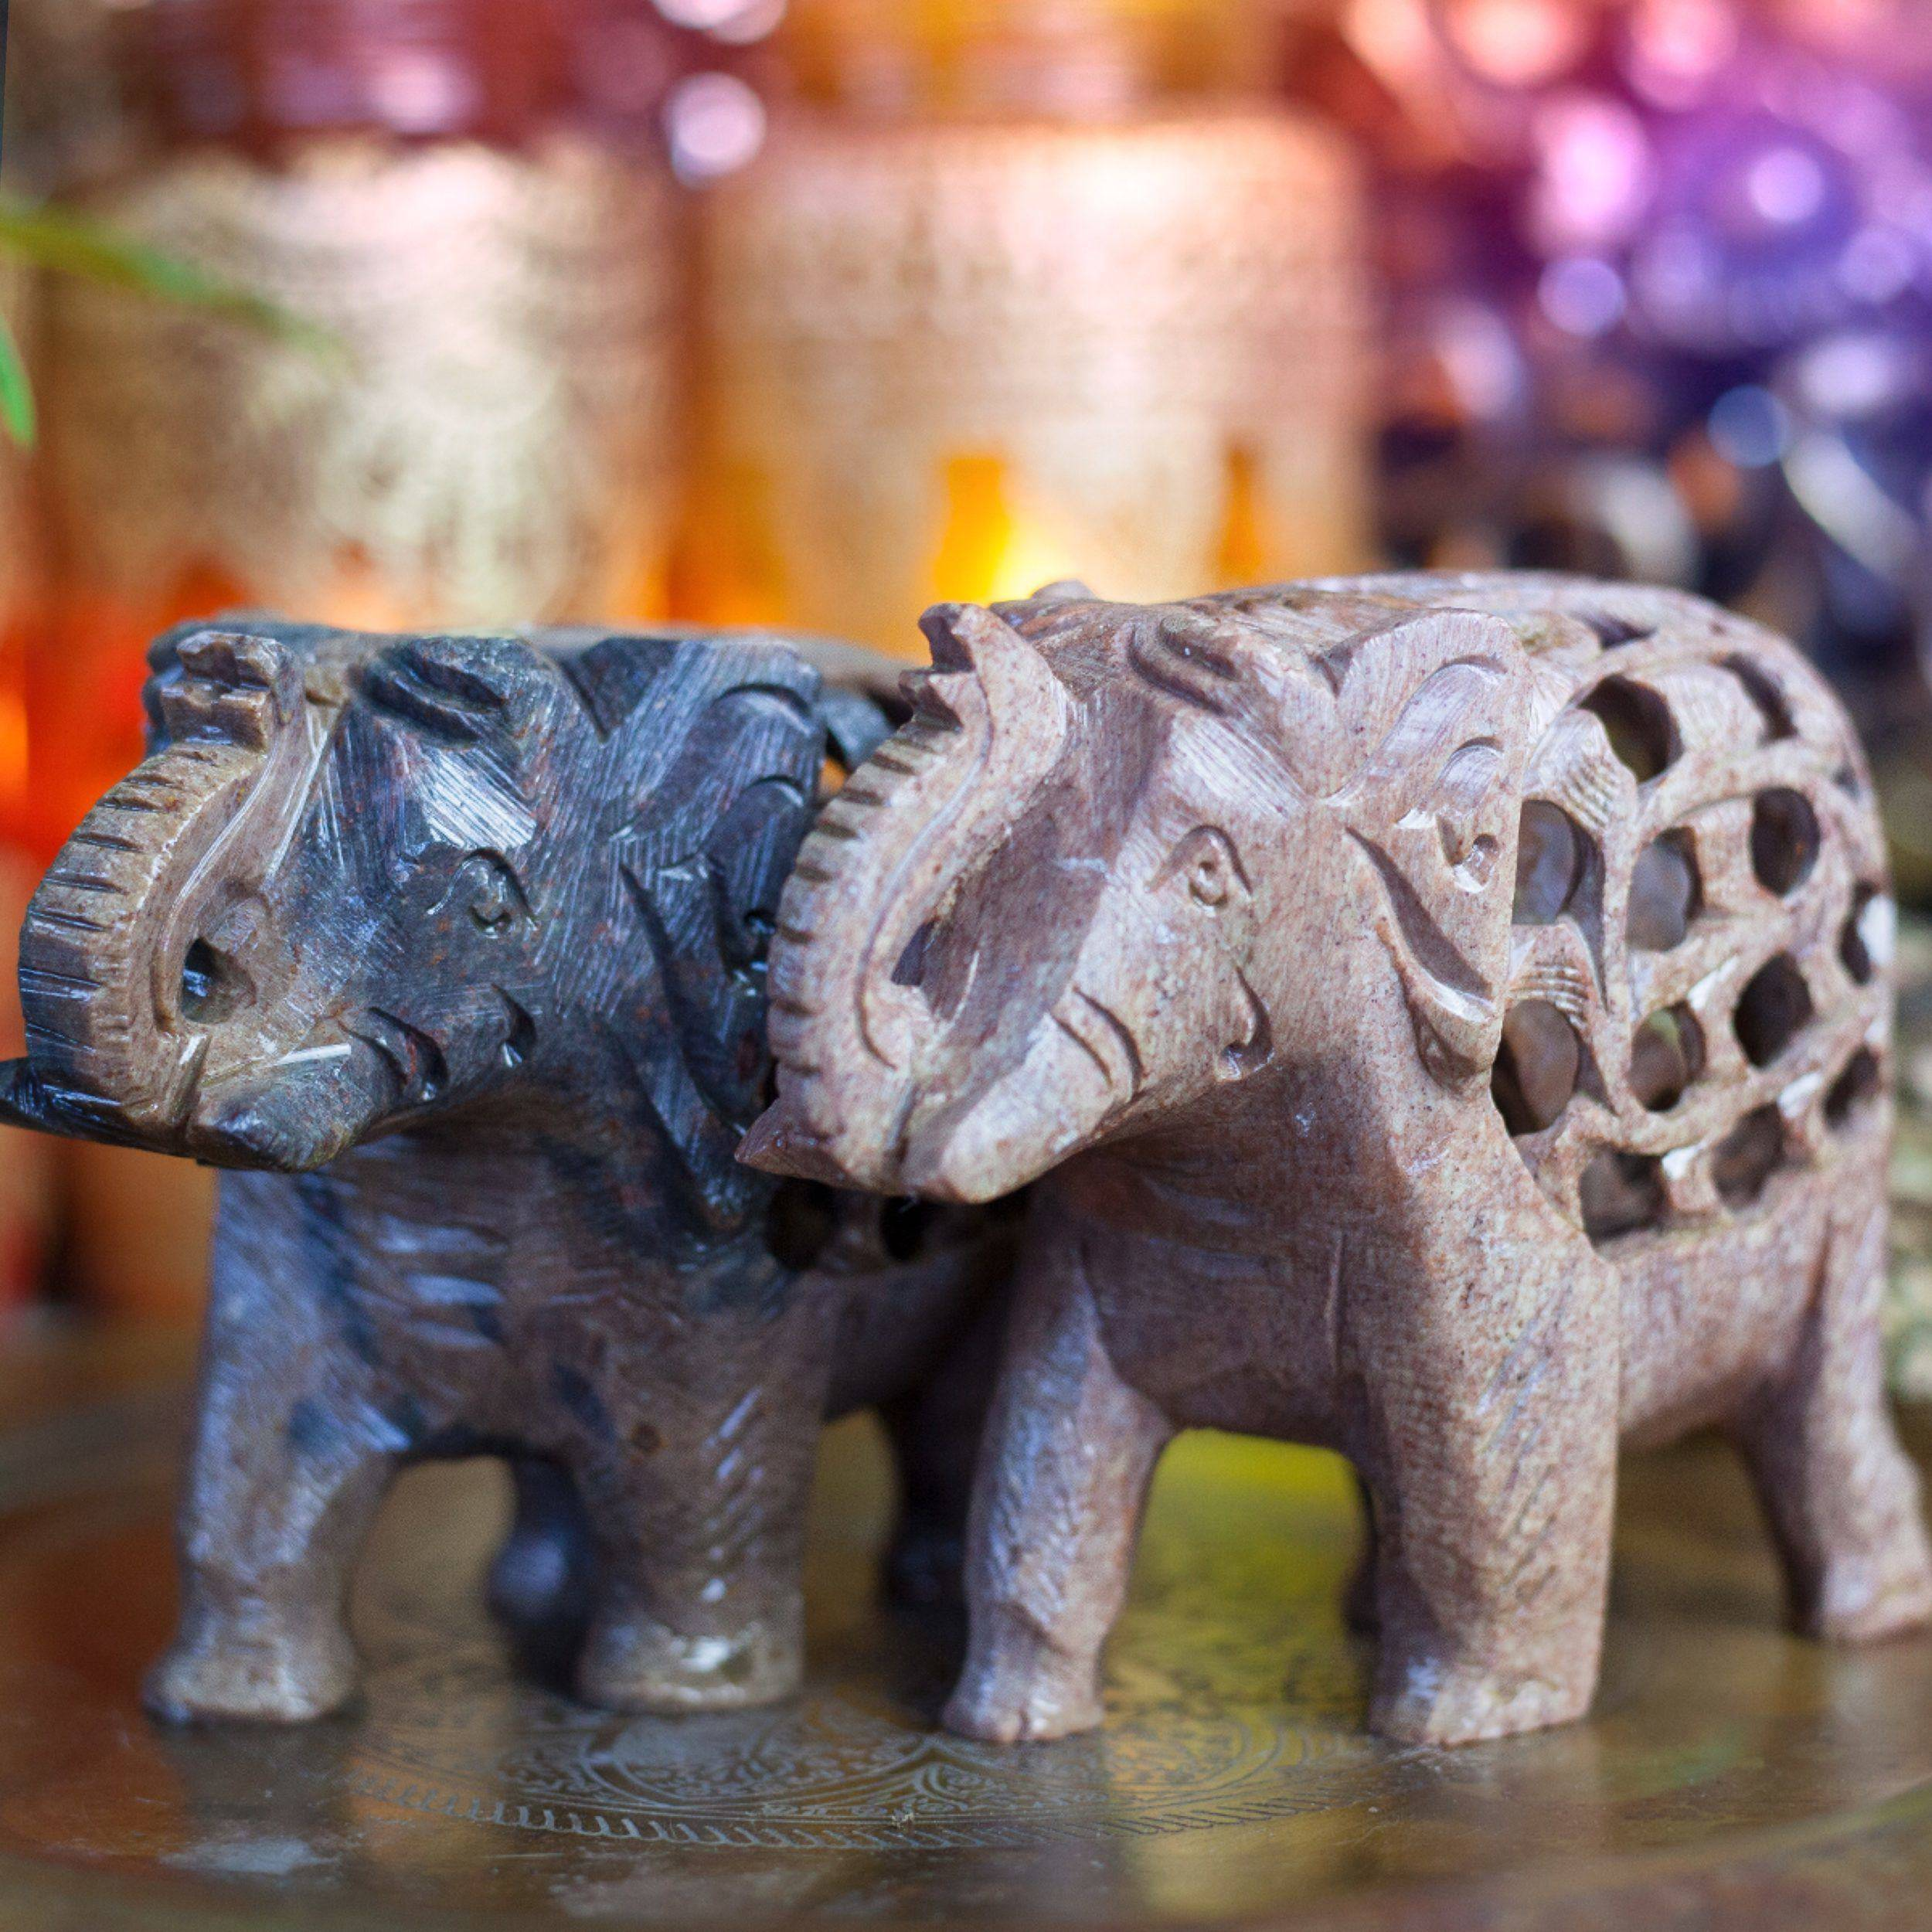 Power_and_Strength_Elephants_2of3_11_6